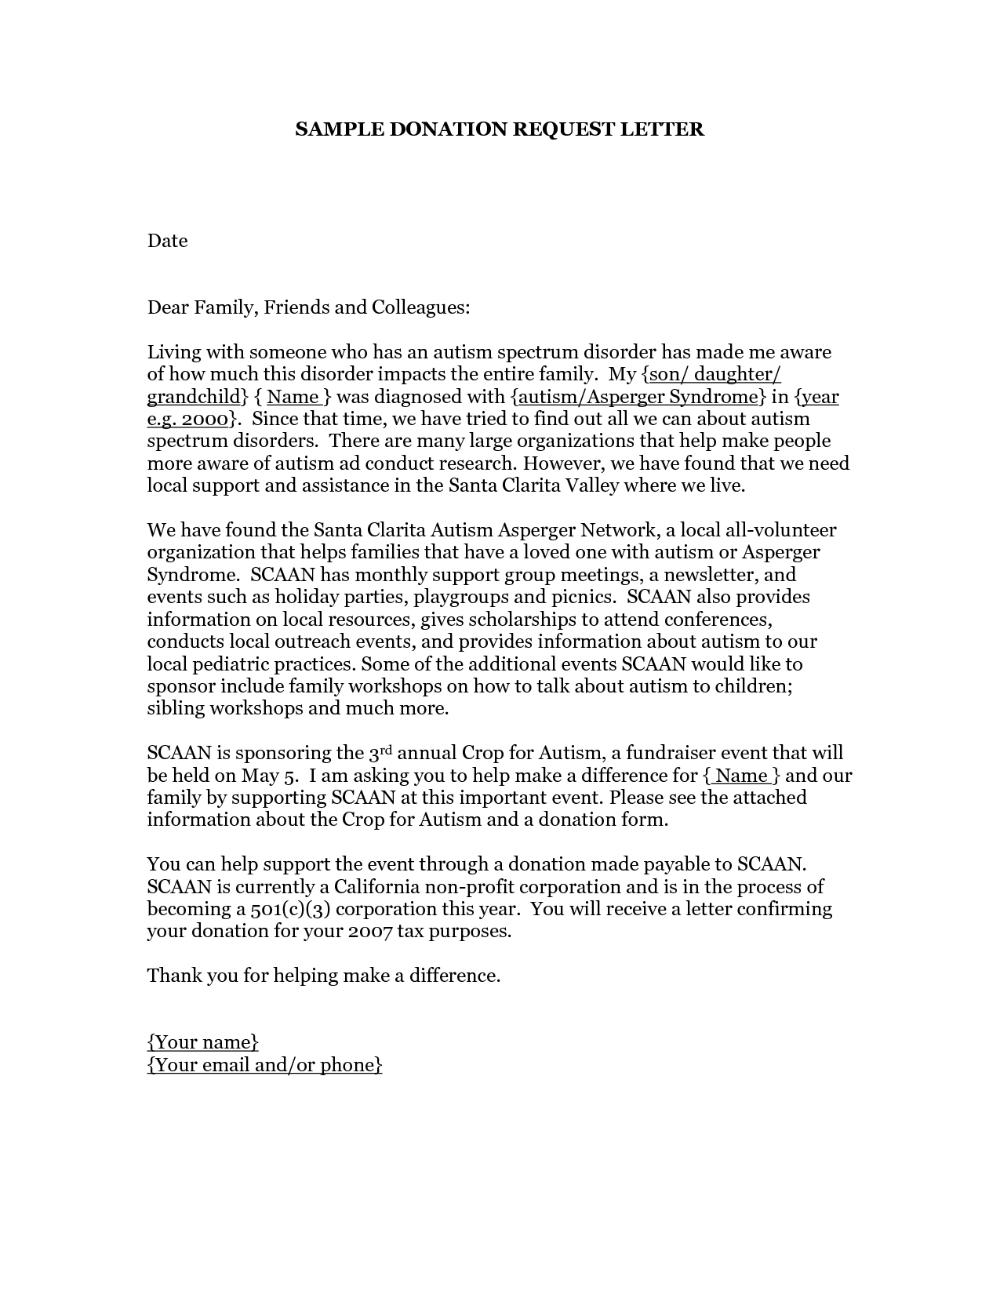 Donation Request Letter A Request For Donation Asks For Donations